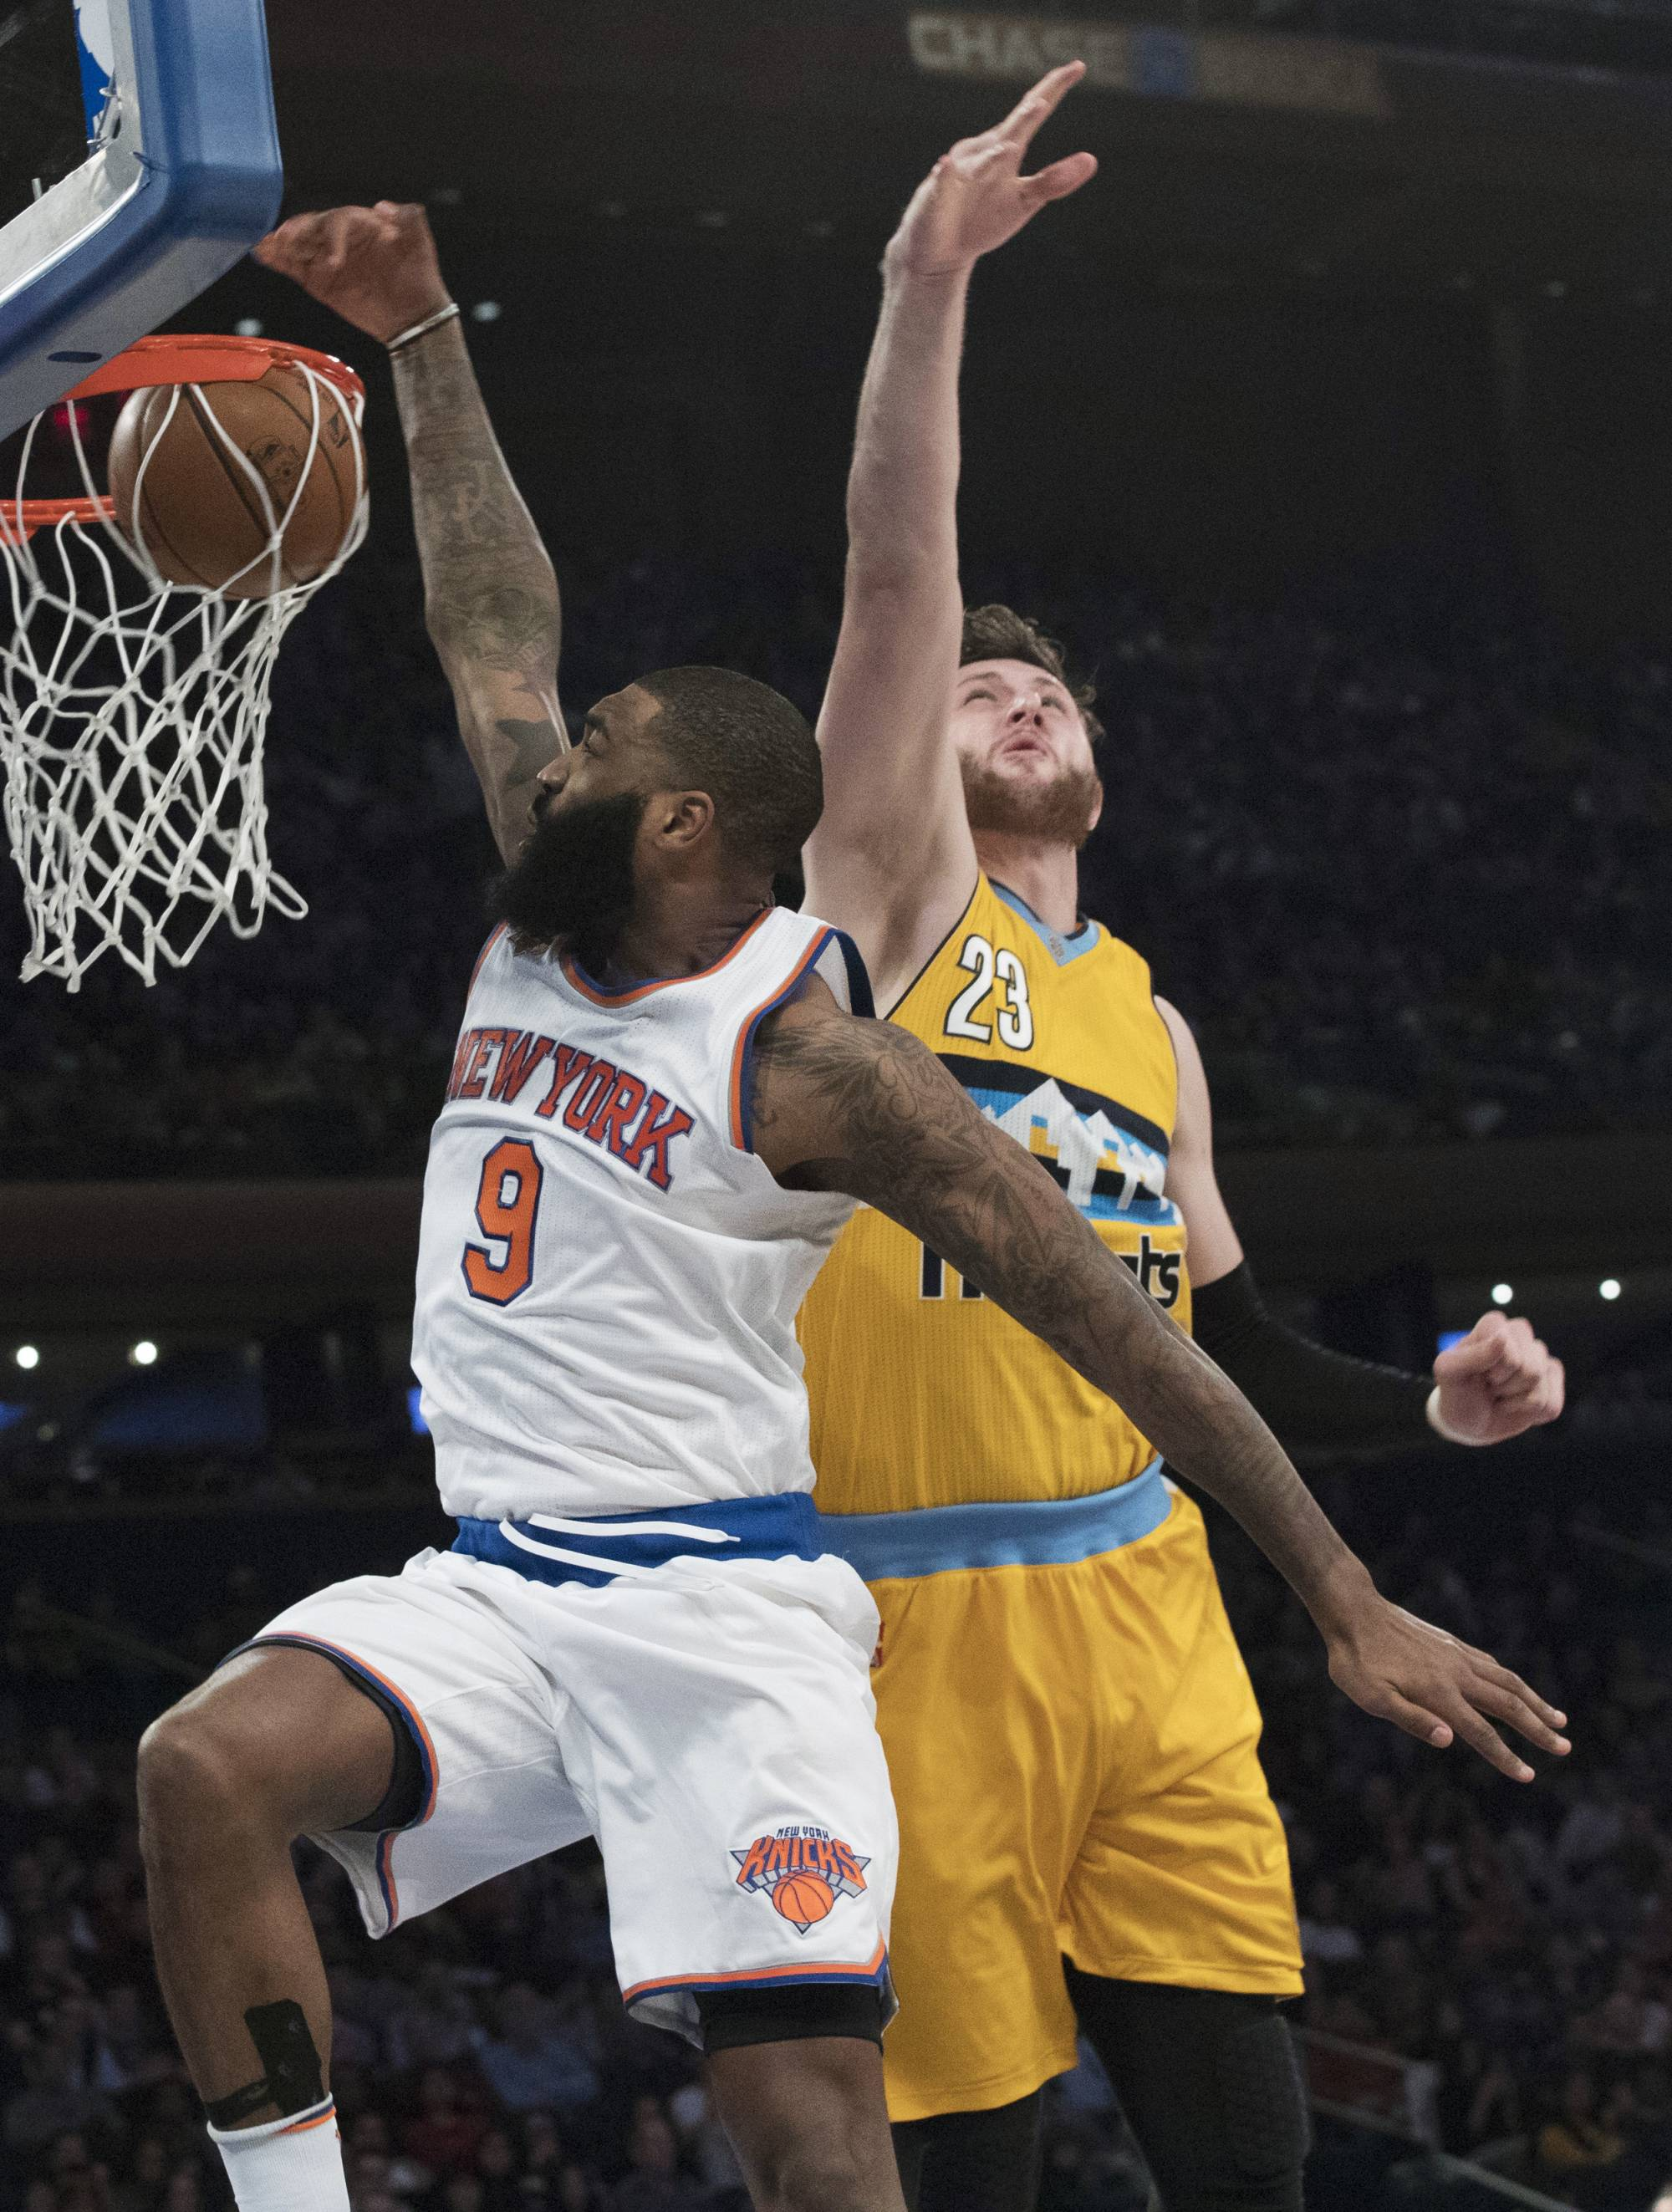 73b95554b1a DENVER (AP) — A person with knowledge of the situation tells The Associated  Press that the Denver Nuggets have traded big man Jusuf Nurkic to the  Portland ...